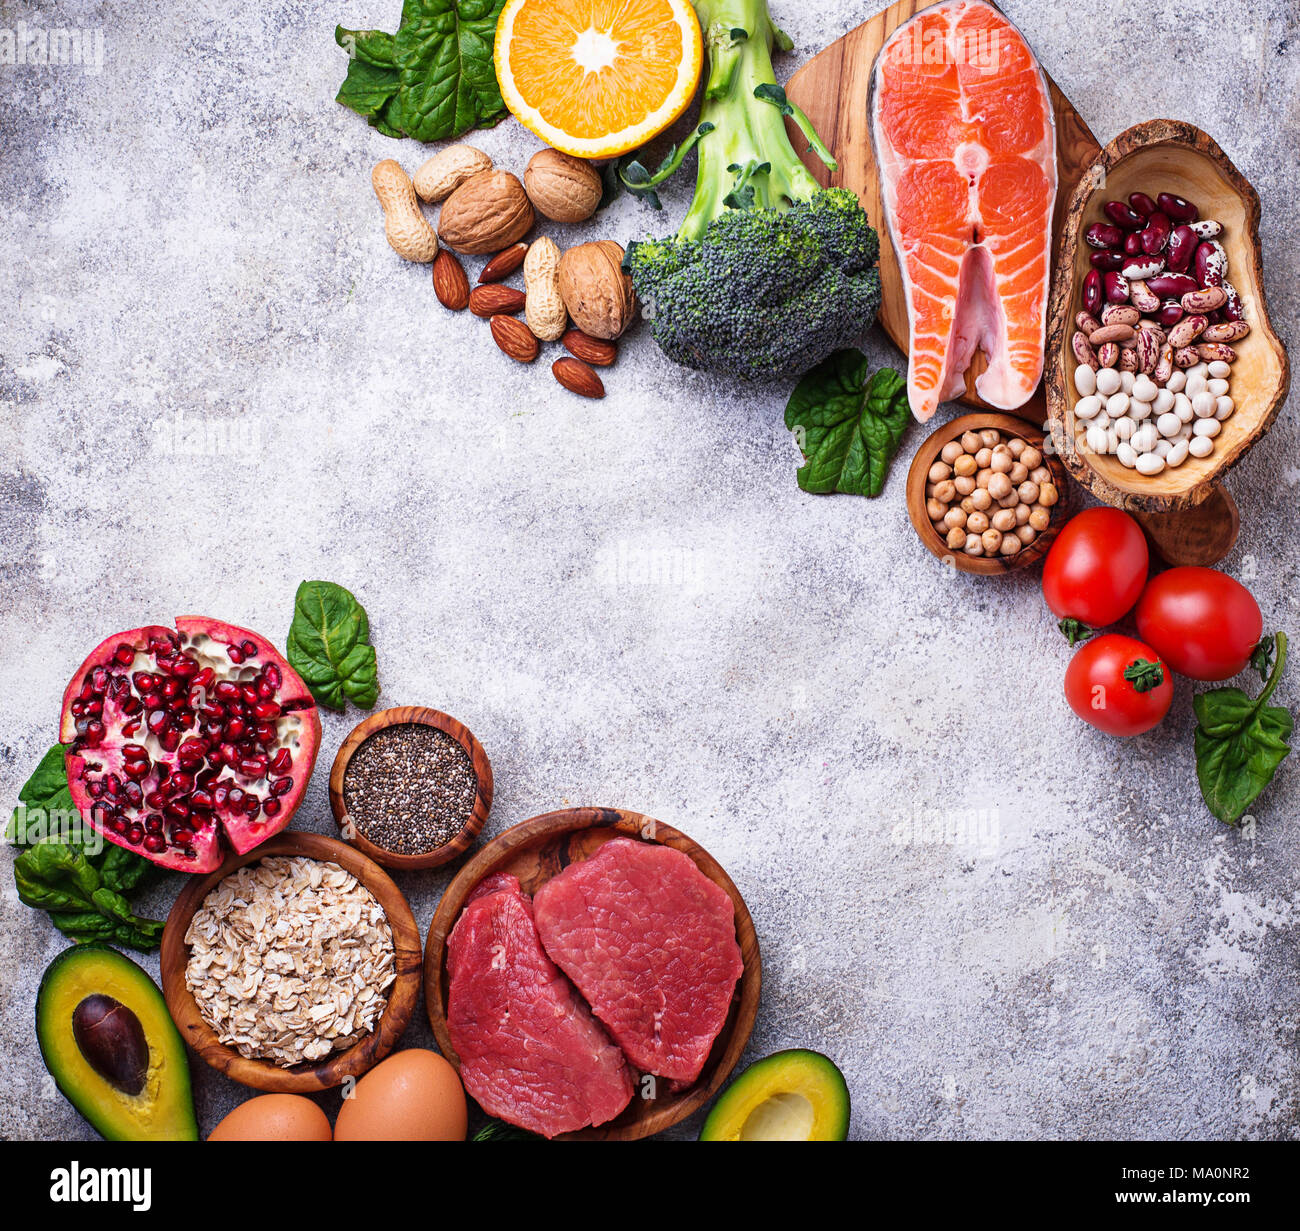 Organic food for healthy nutrition and superfoods. Balanced diet. Top view, copy space - Stock Image